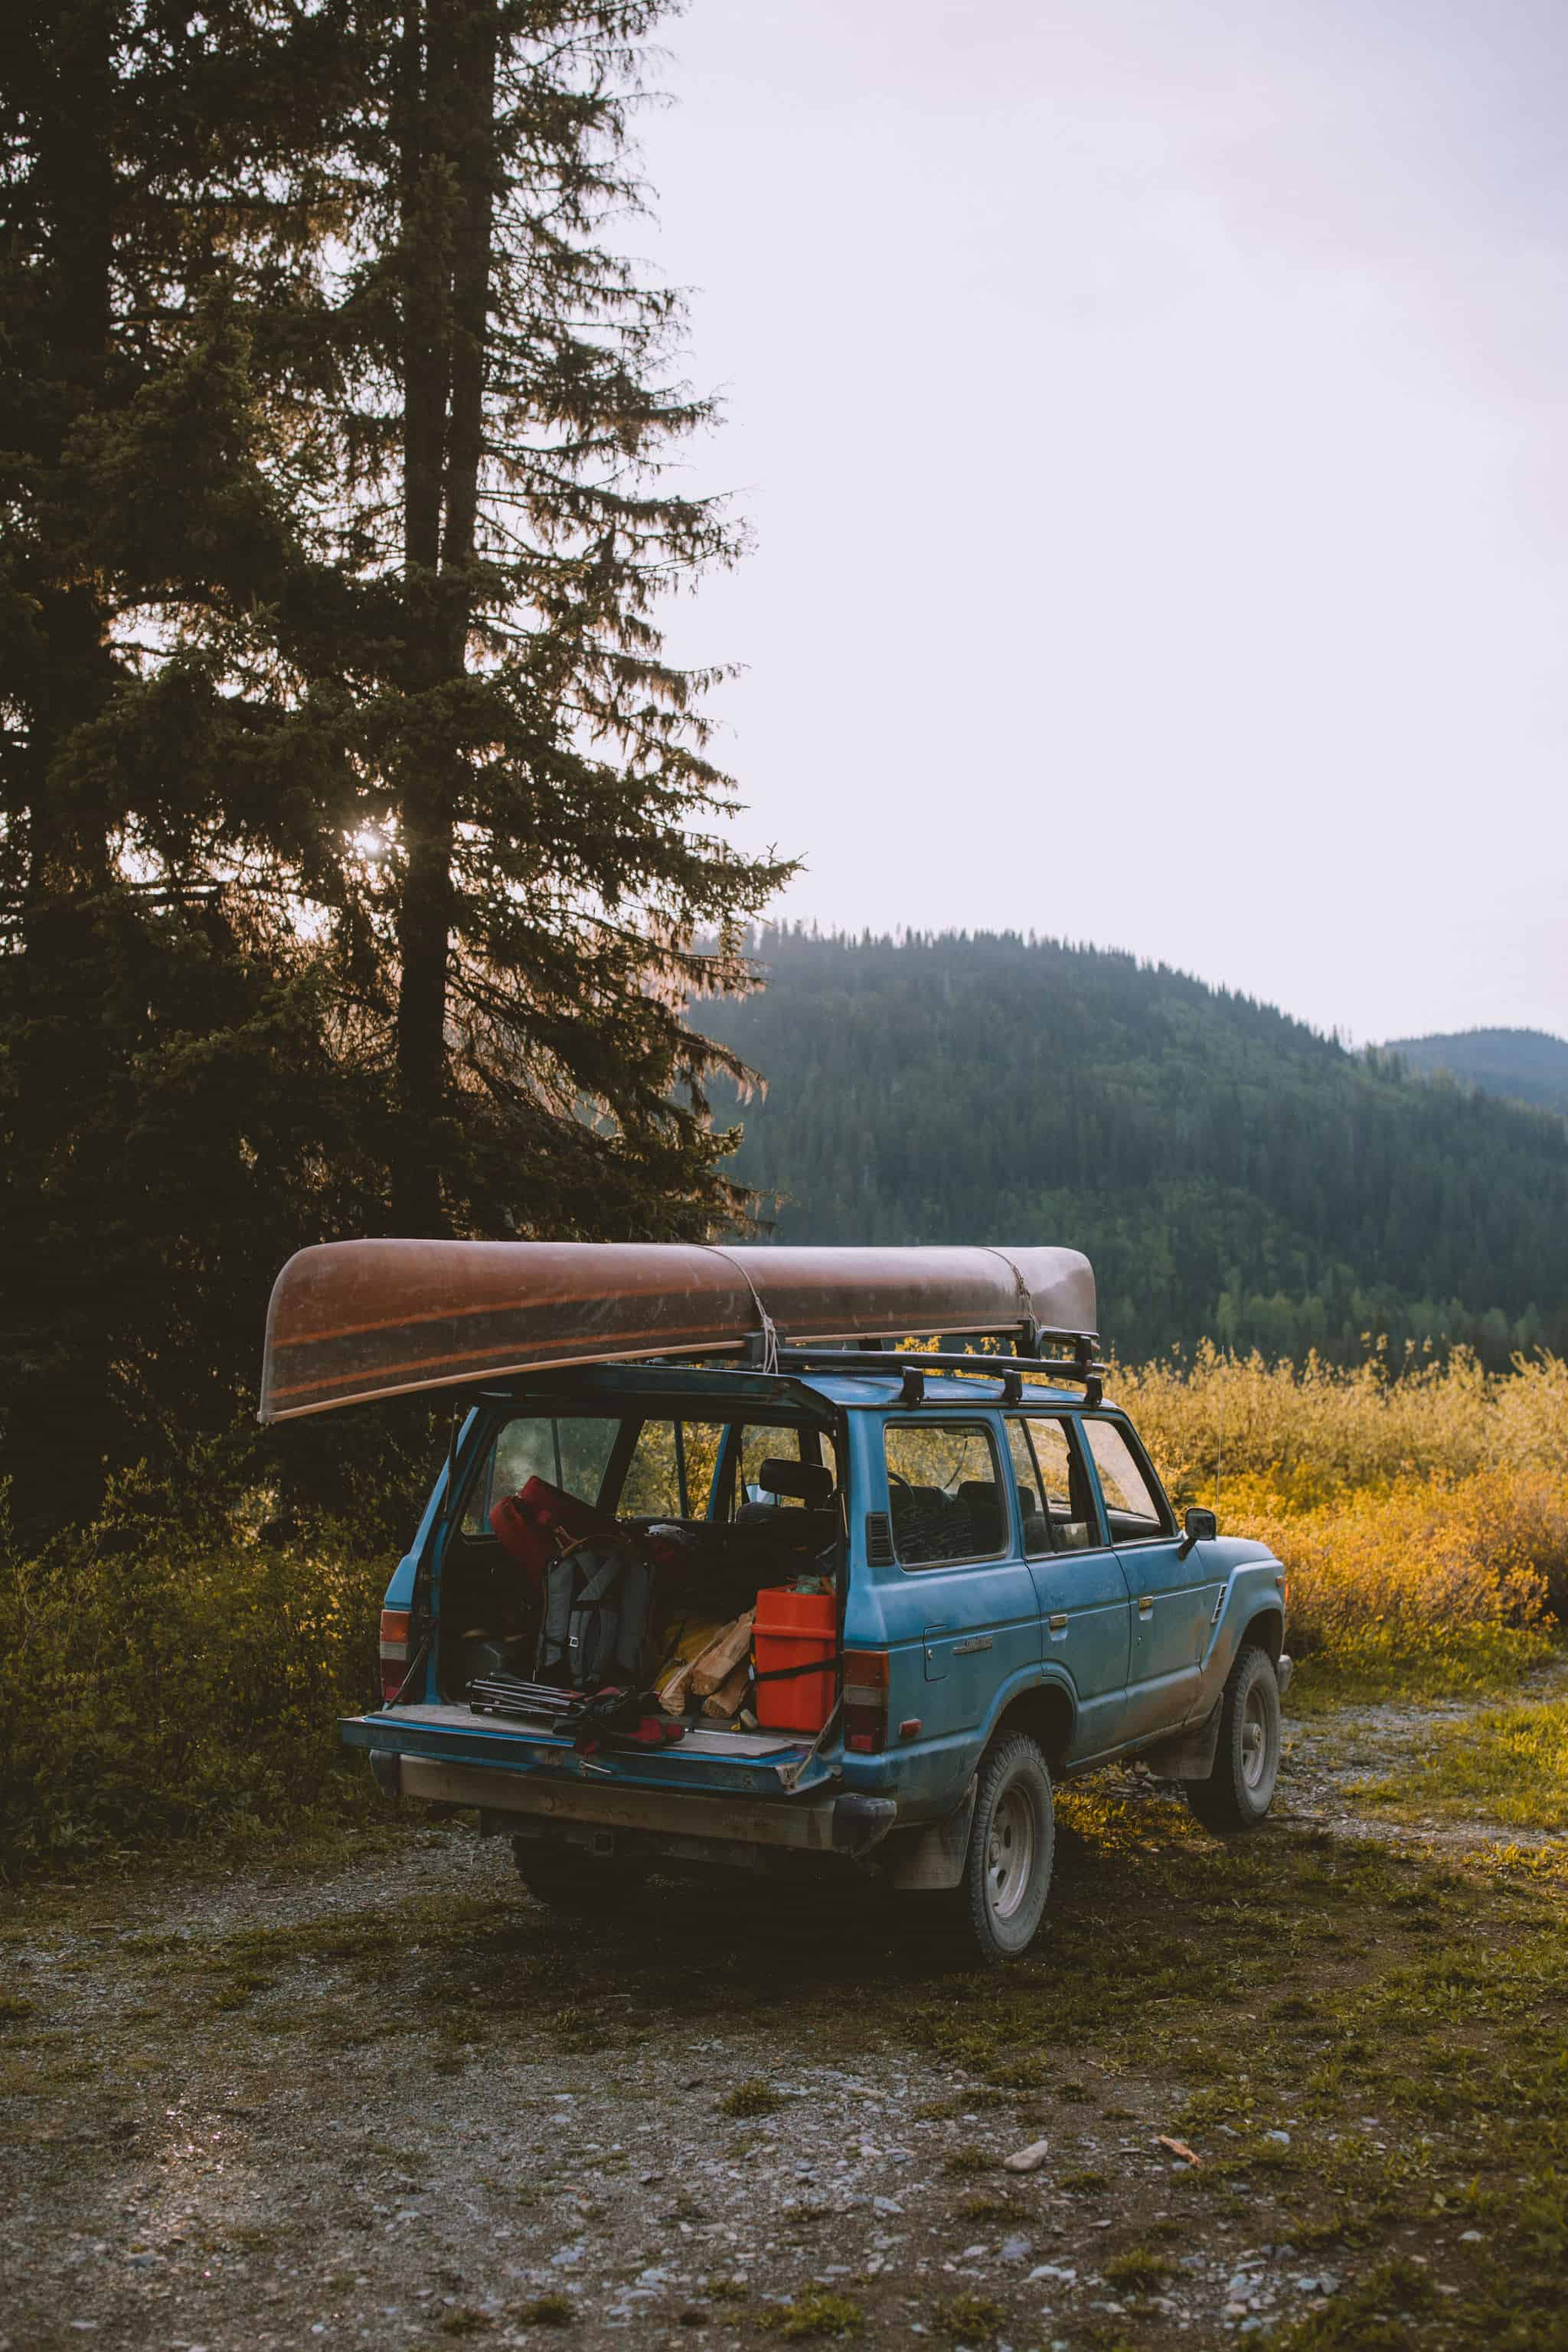 open back of toyota FJ cruiser while camping